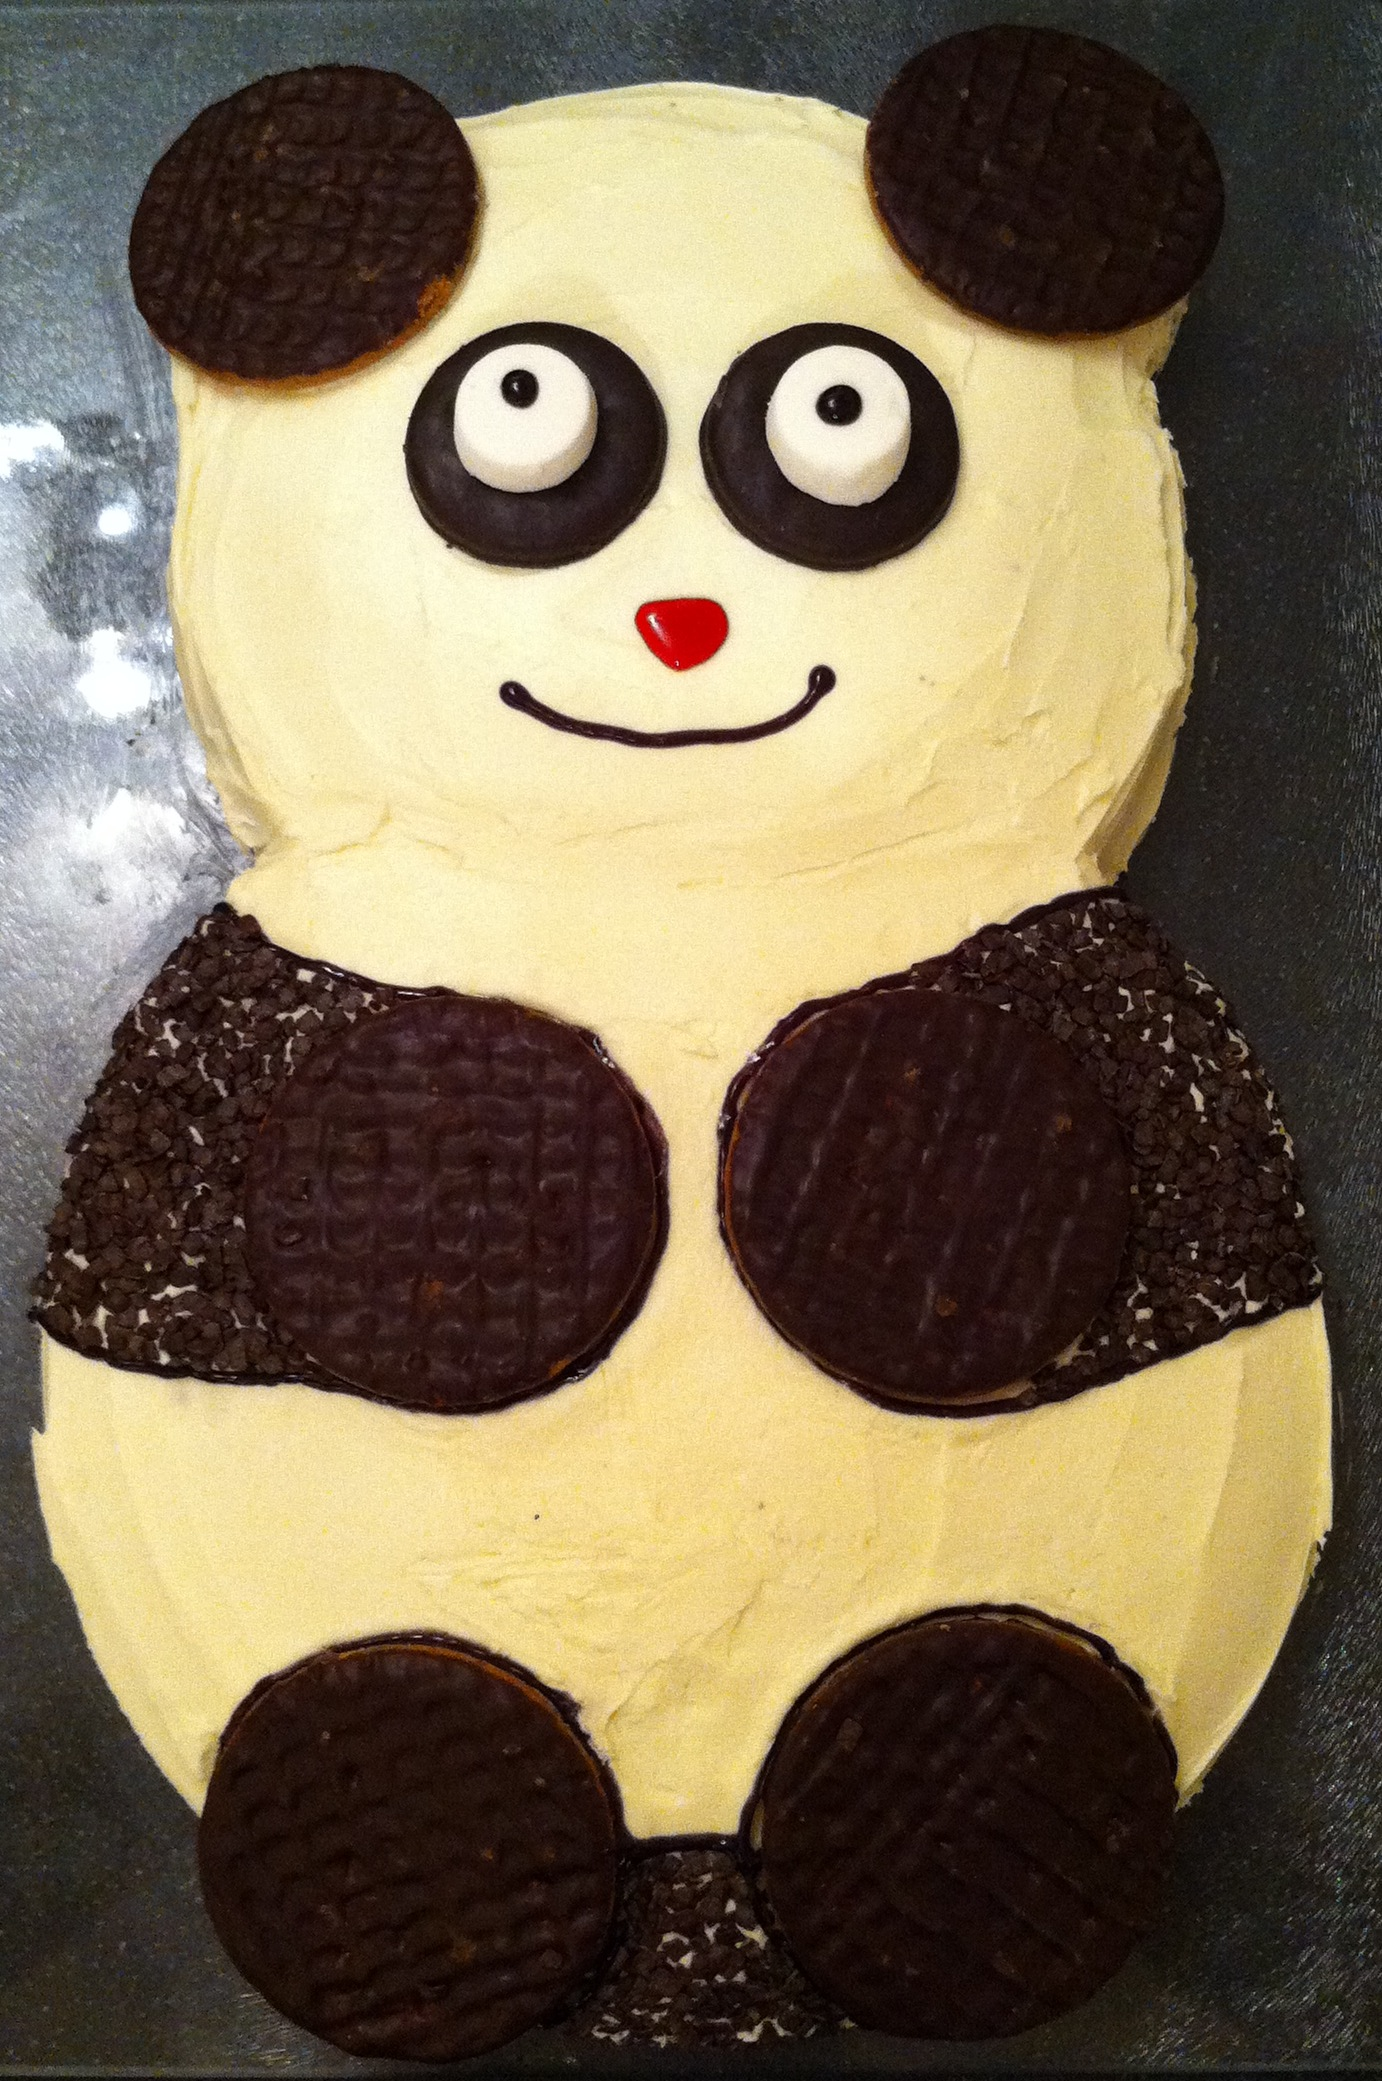 A gorgeous birthday cake of a somewhat cartoon-ish panda.